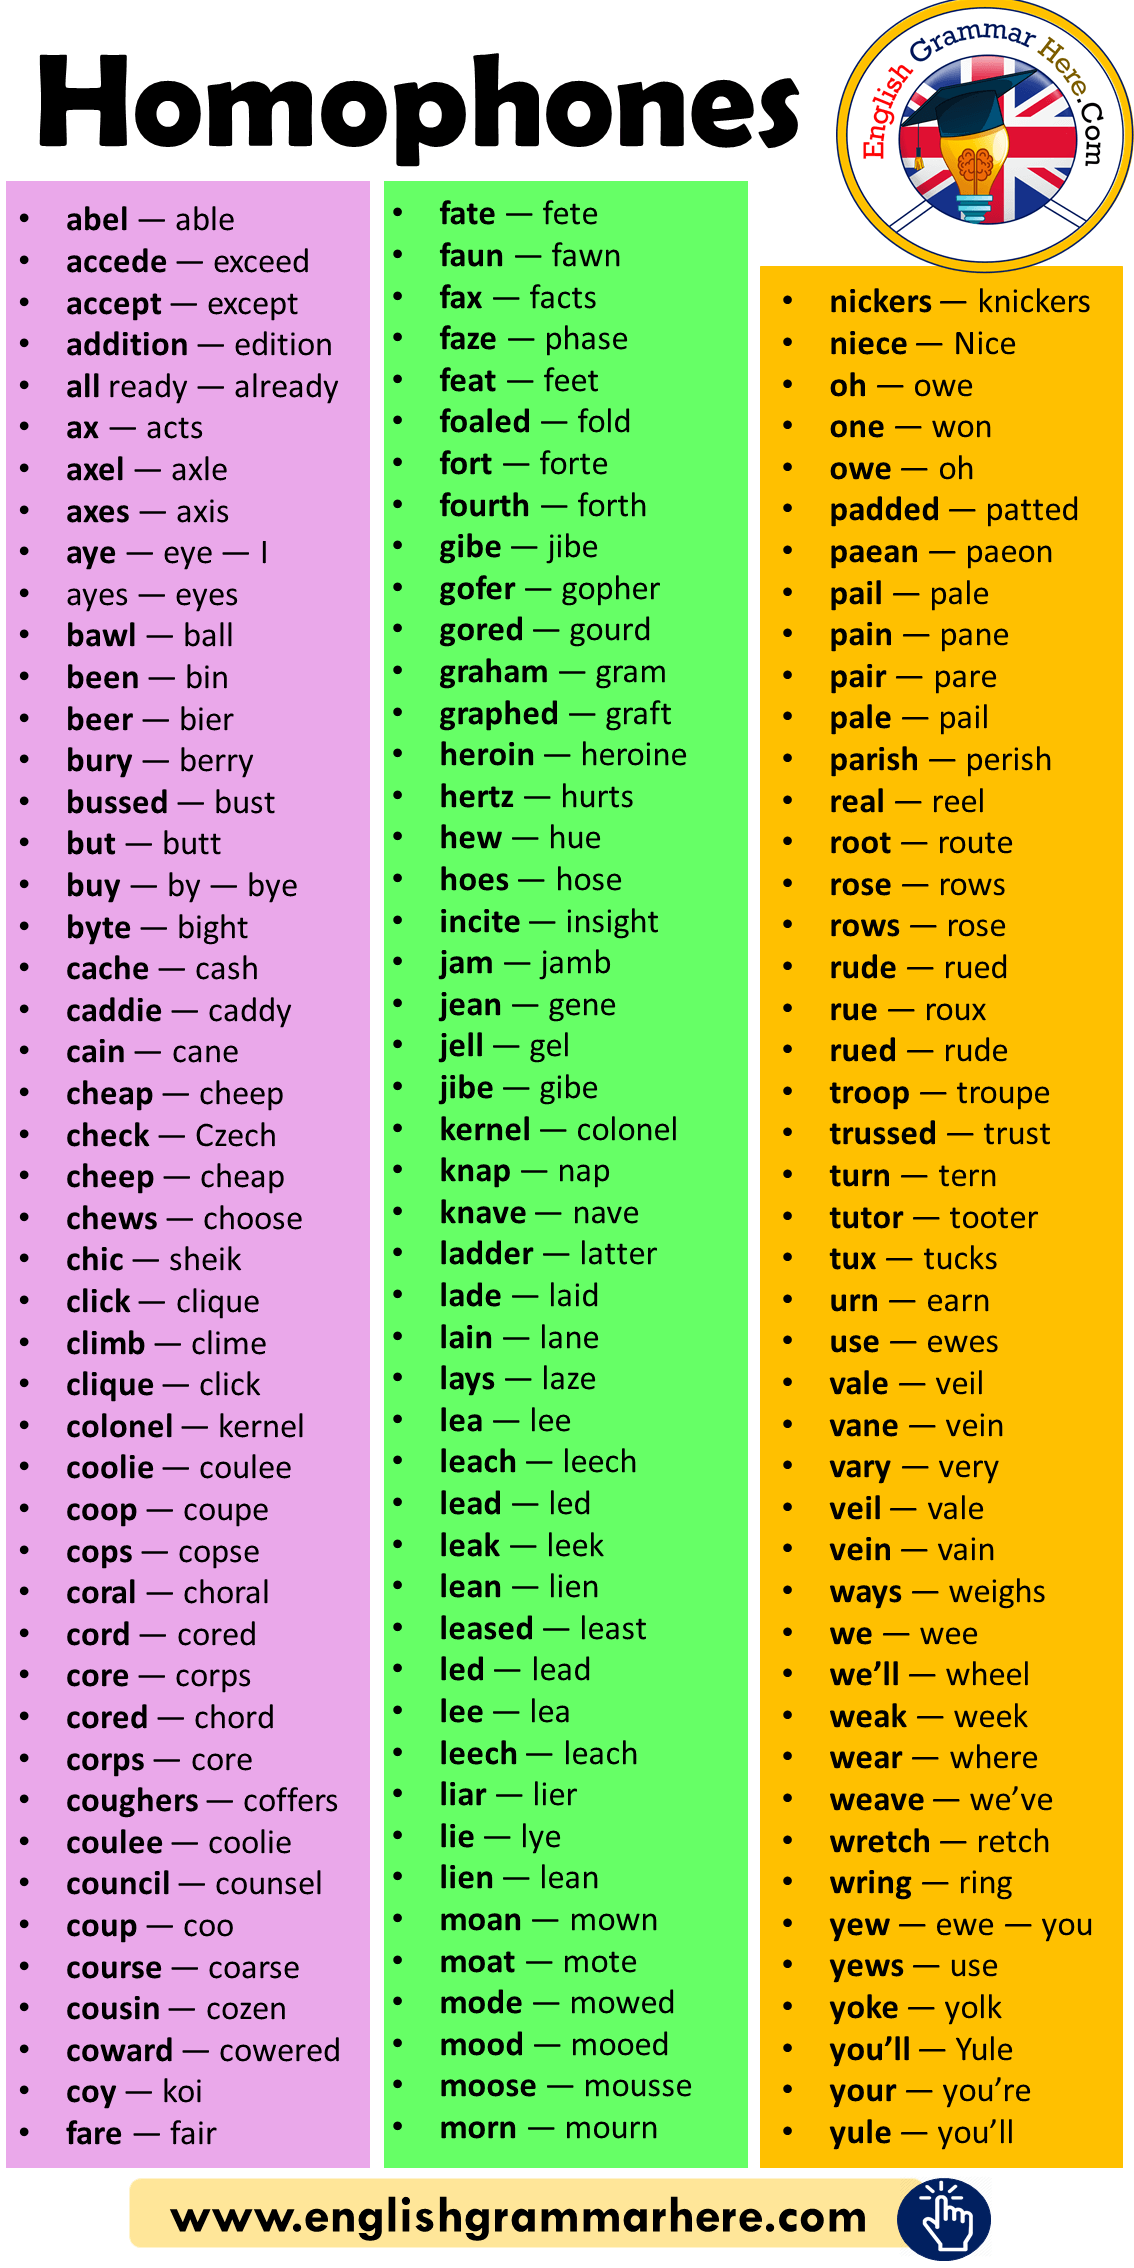 200 Homophones List In English